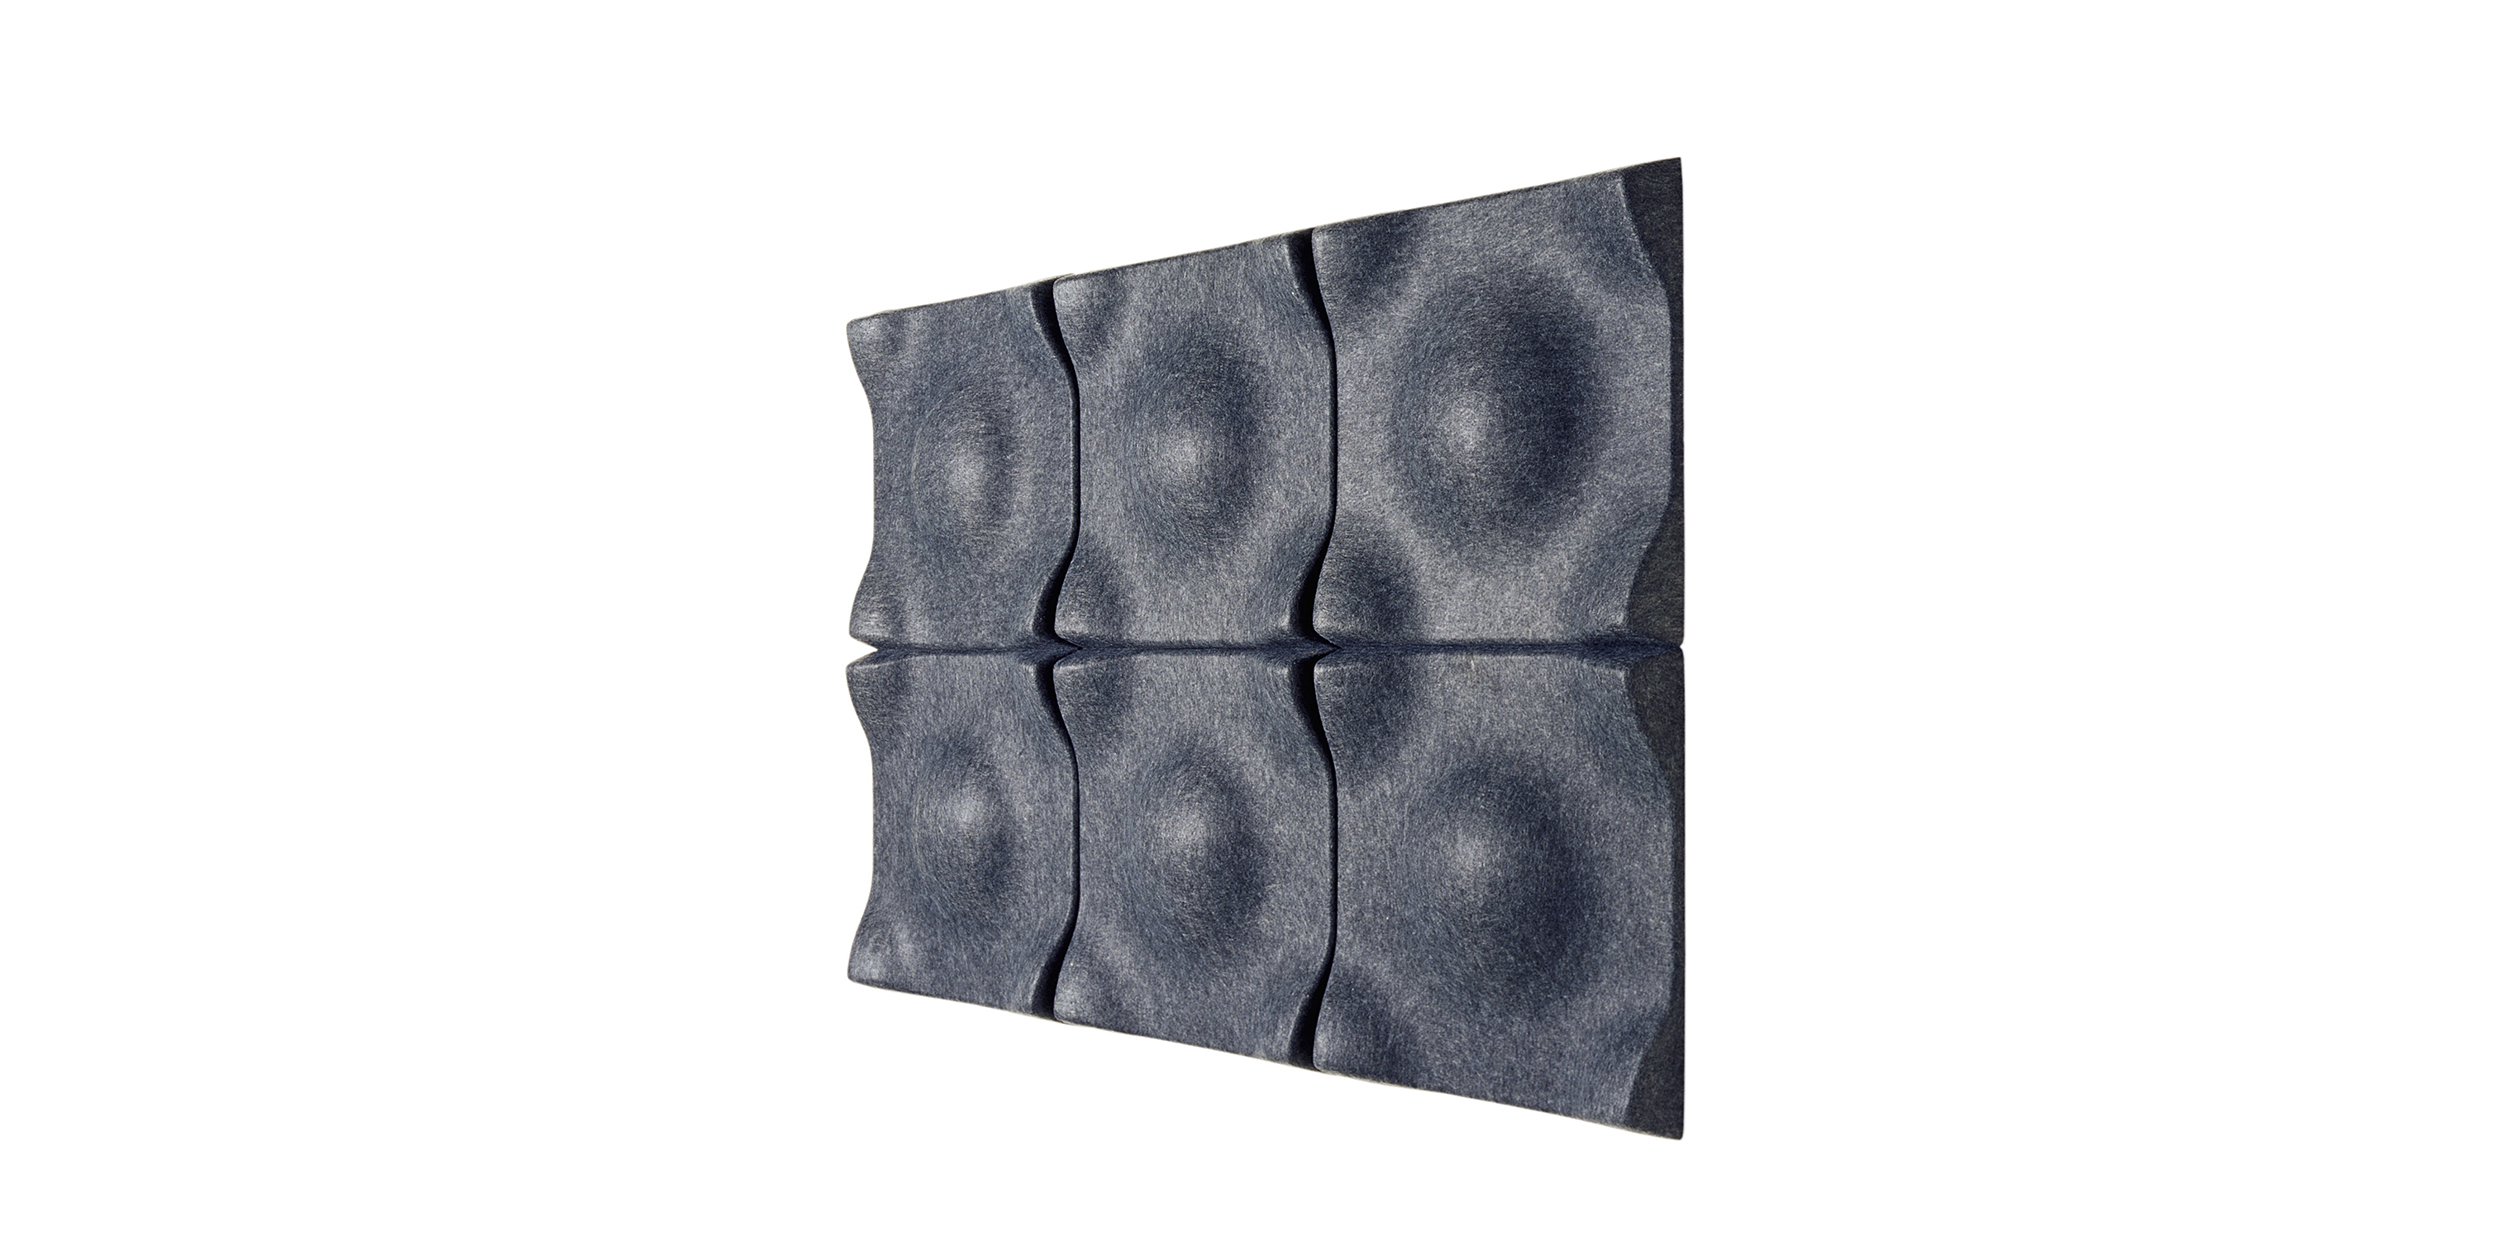 Soundwave® Swell, Acoustic panel by Teppo Asikainen